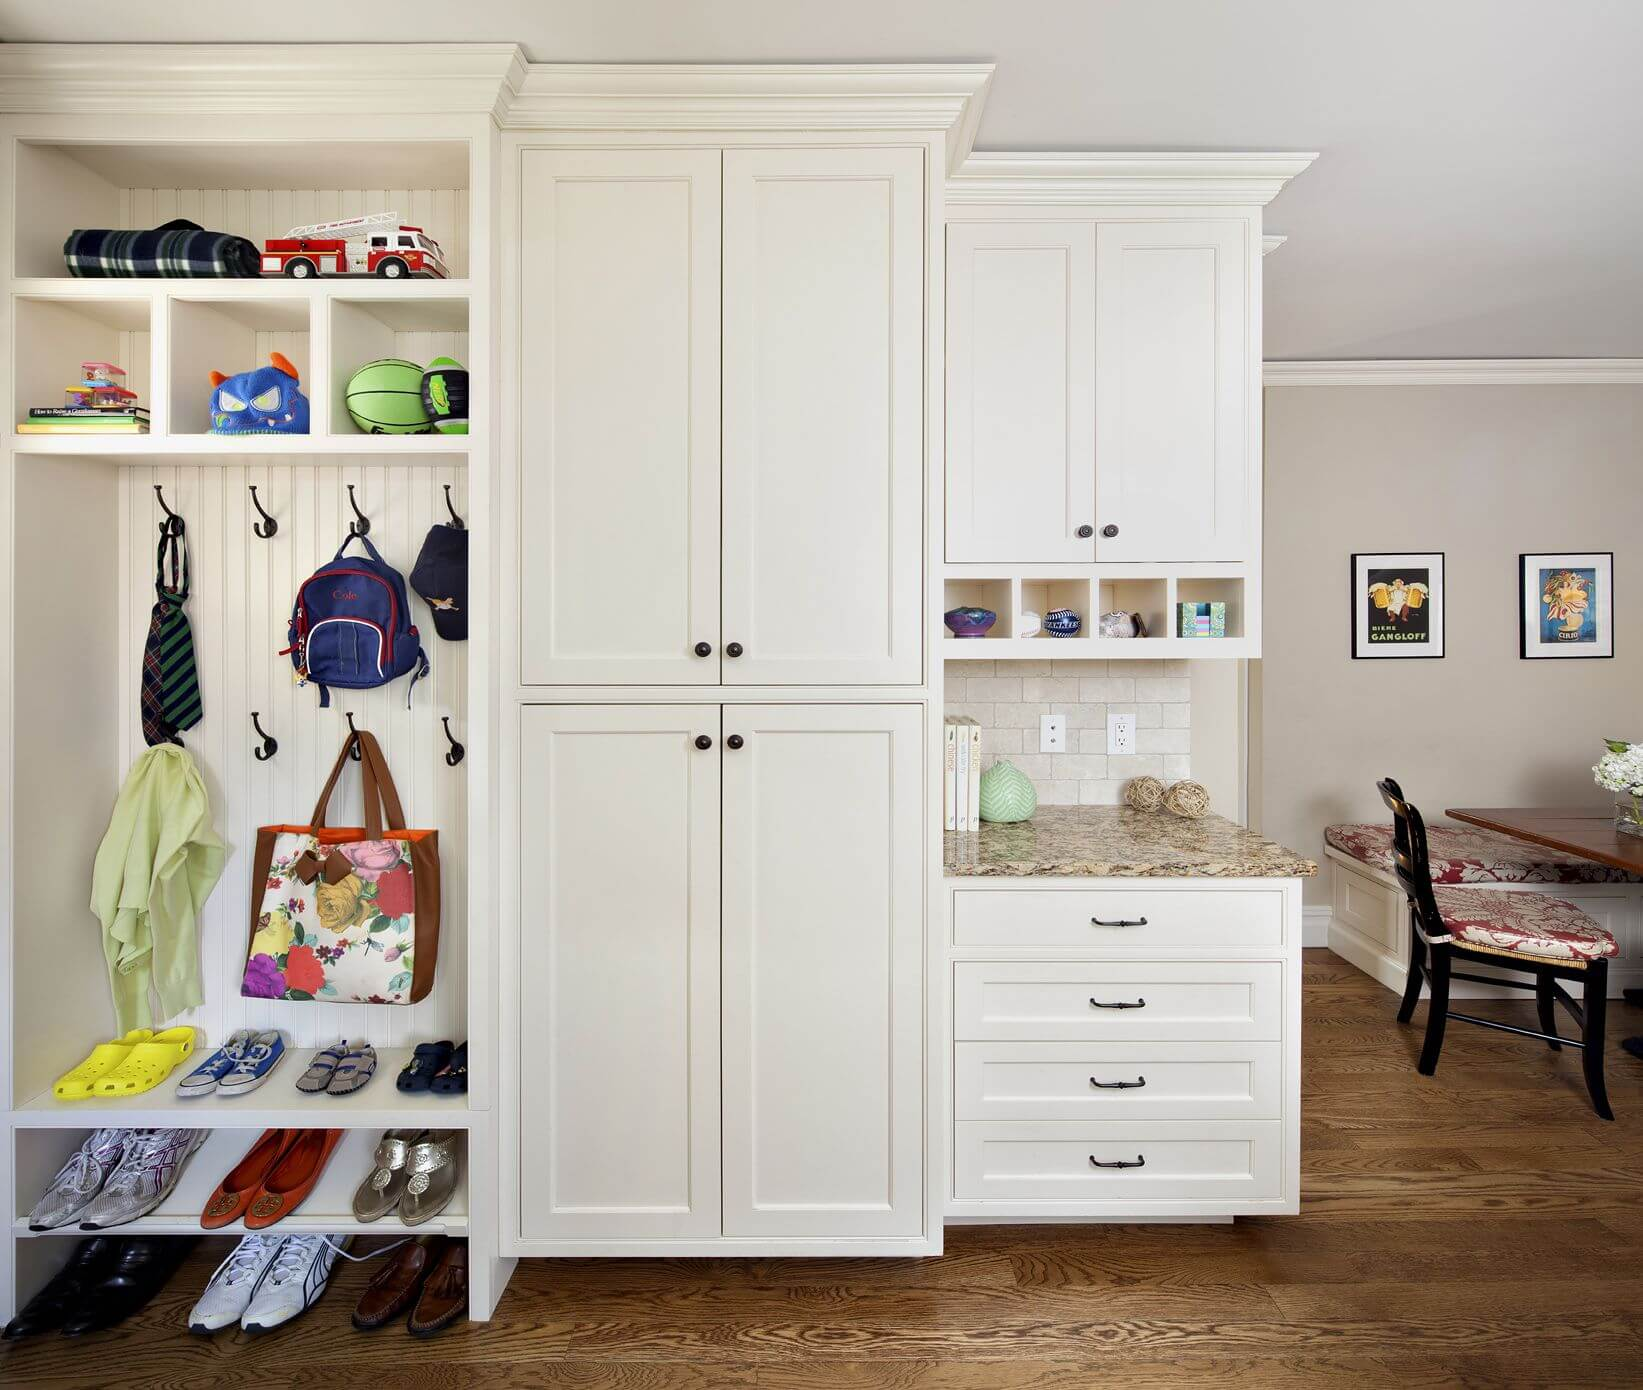 Mudroom cabinets with doors